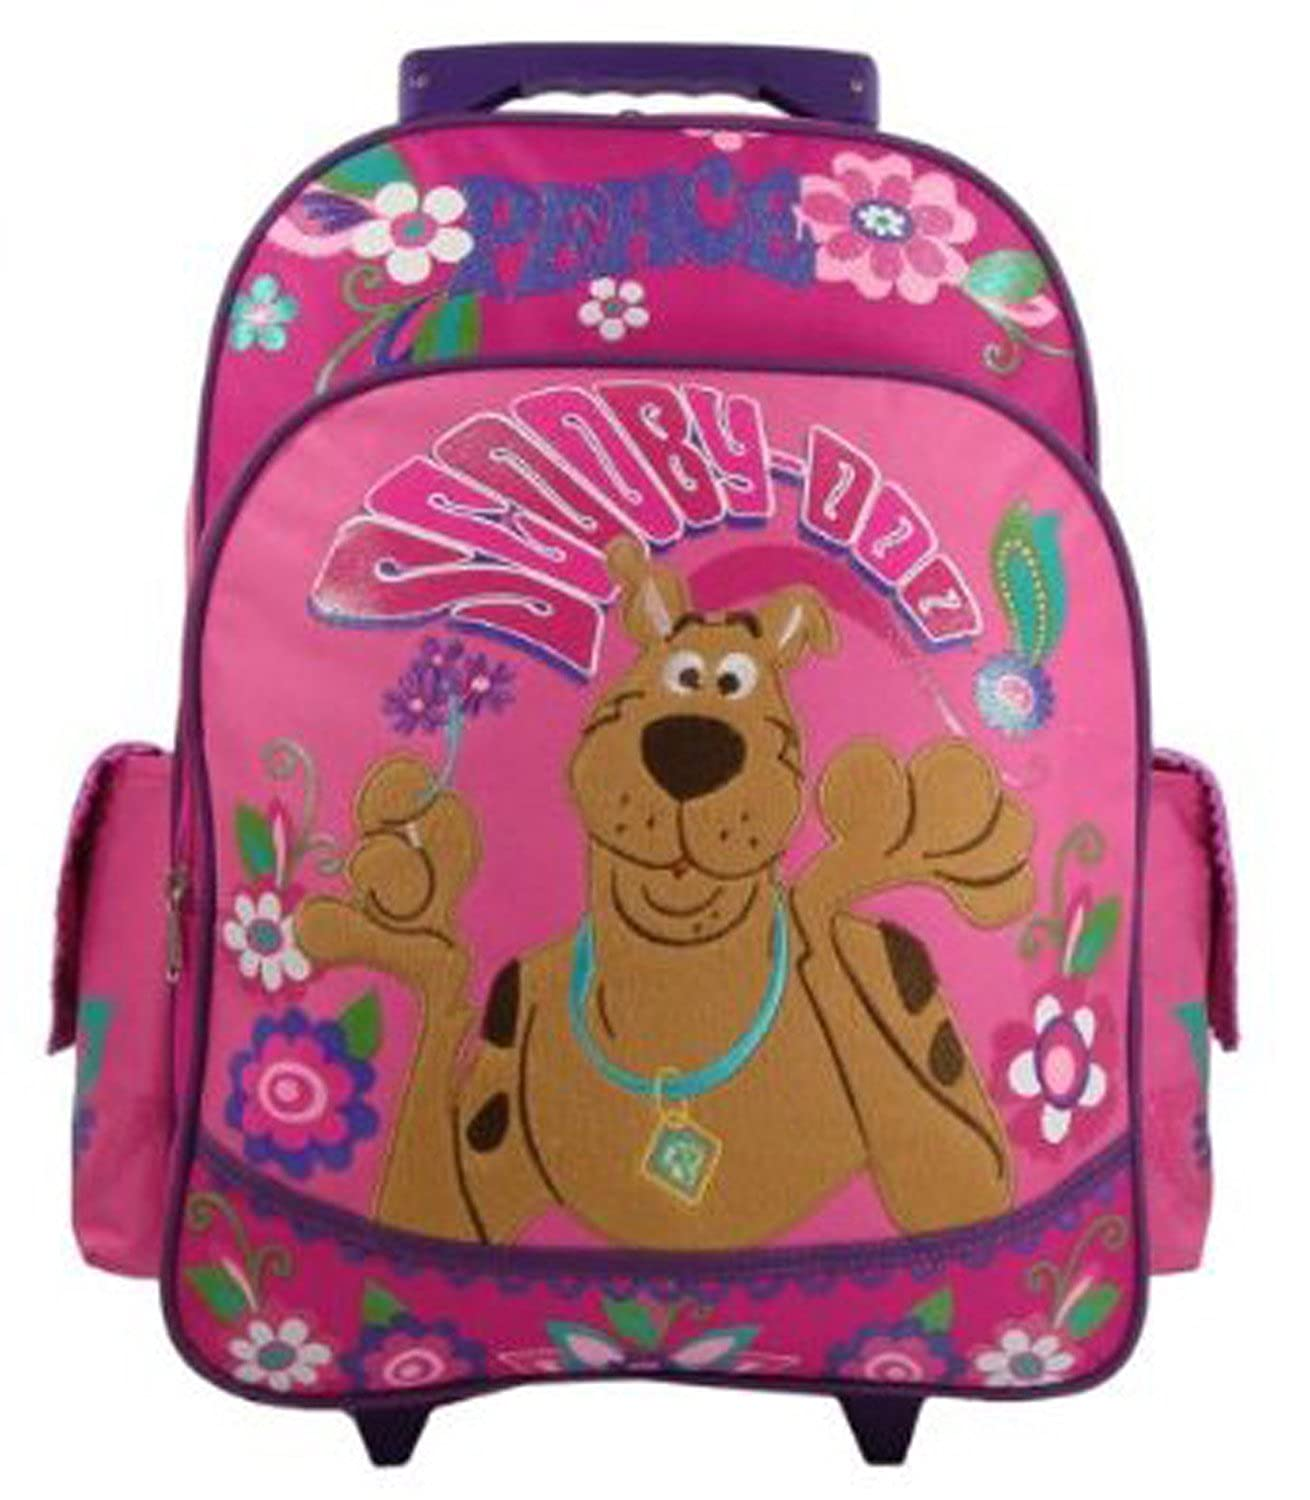 scooby doo peace love large 15 rolling backpack